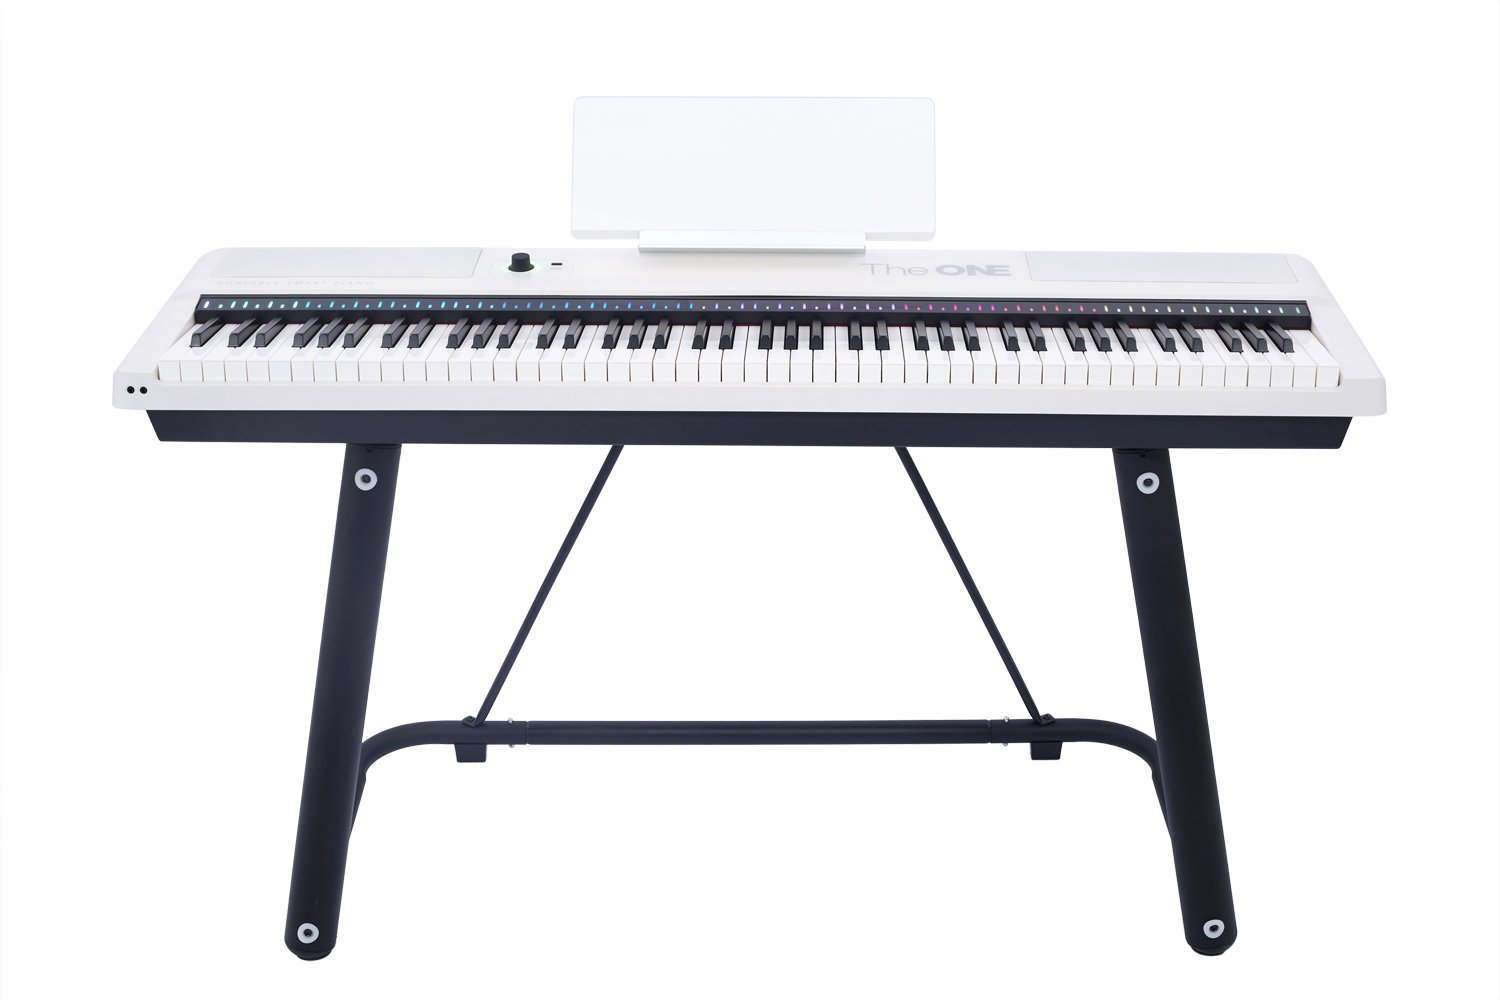 The ONE Smart Keyboard Pro, 88-Key Digital Piano Keyboard, Portable Digital Piano, Weighted Action Keys, White by The ONE Music Group (Image #3)